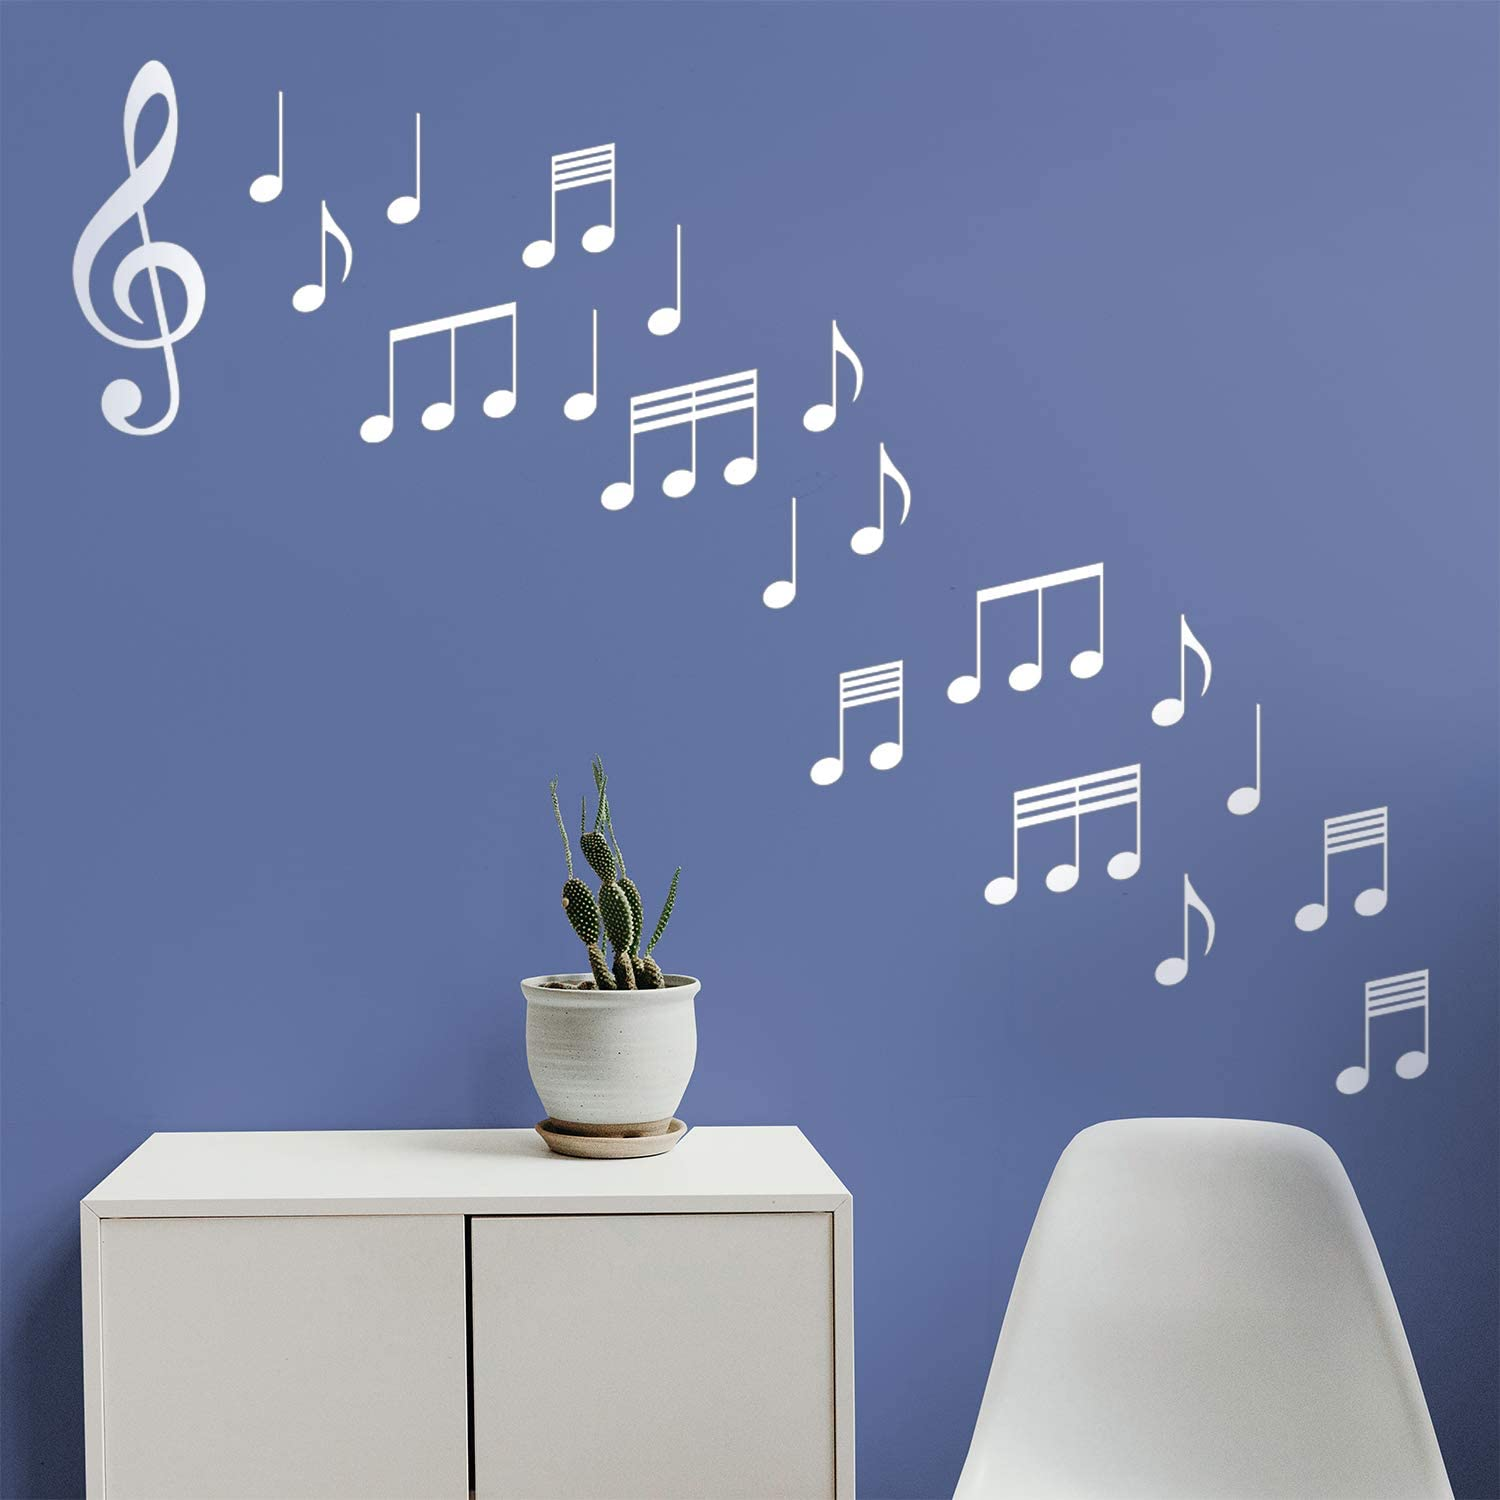 """Set of 20 Vinyl Wall Art Decals - Music Notes - from 6"""" to 8"""" Each - Modern Trendy Musical Notations Home Bedroom Classroom Studio Apartment Living Room Work Office Decor (6"""" x 8"""", White)"""